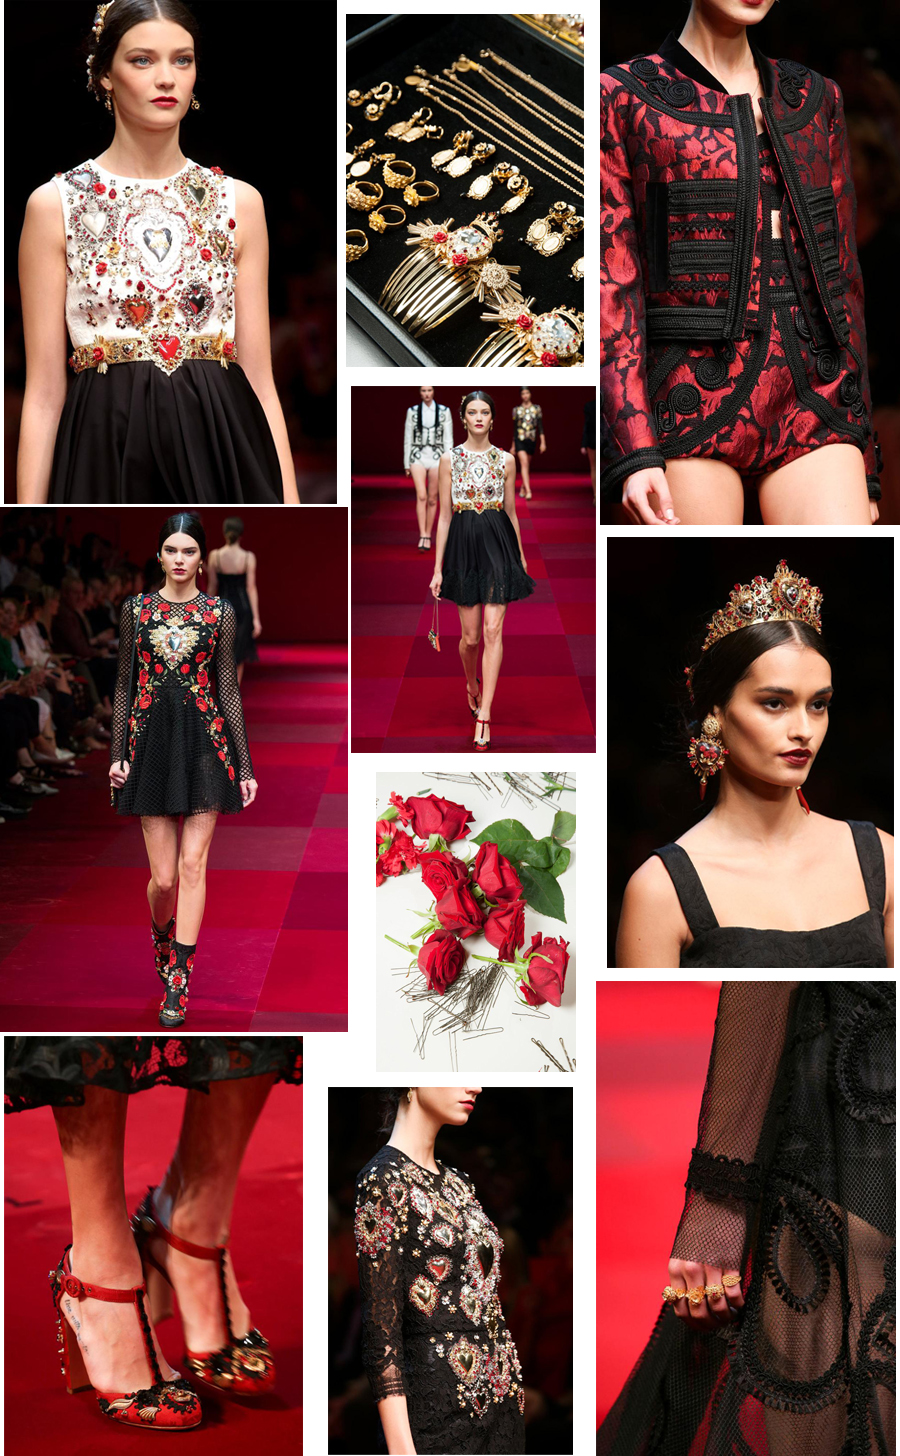 dolce-gabbana-summer-2015-milan-fashion-week